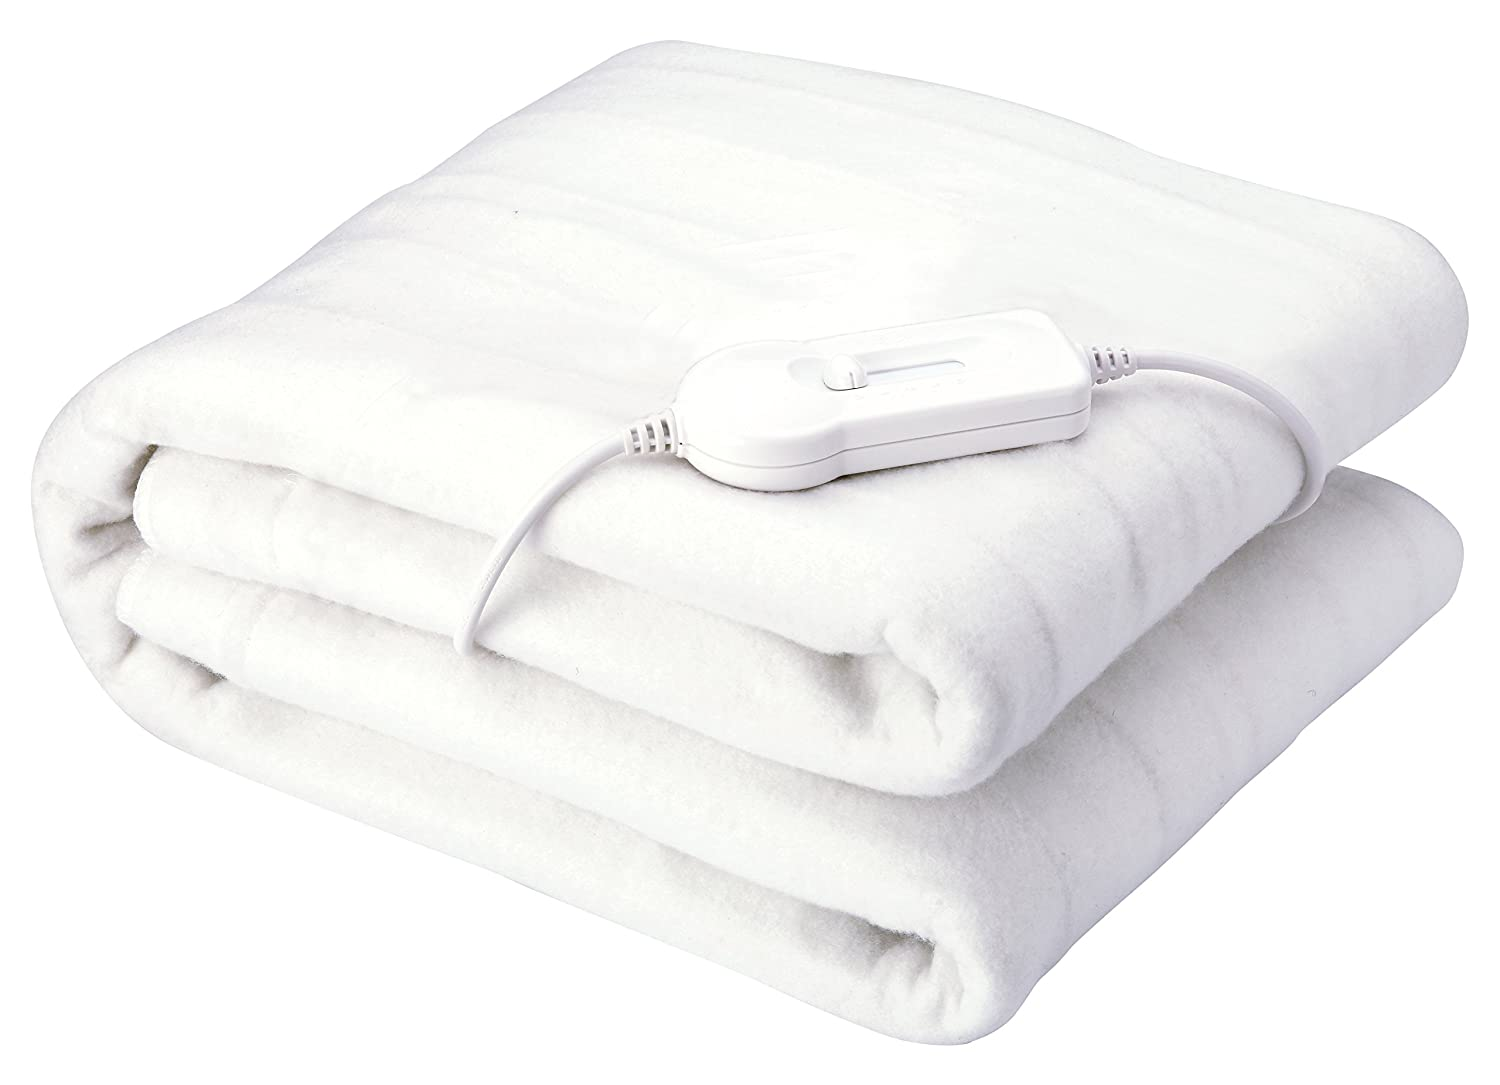 Luxury King Electric Blanket With Dual Heat Control groundlevel.co.uk